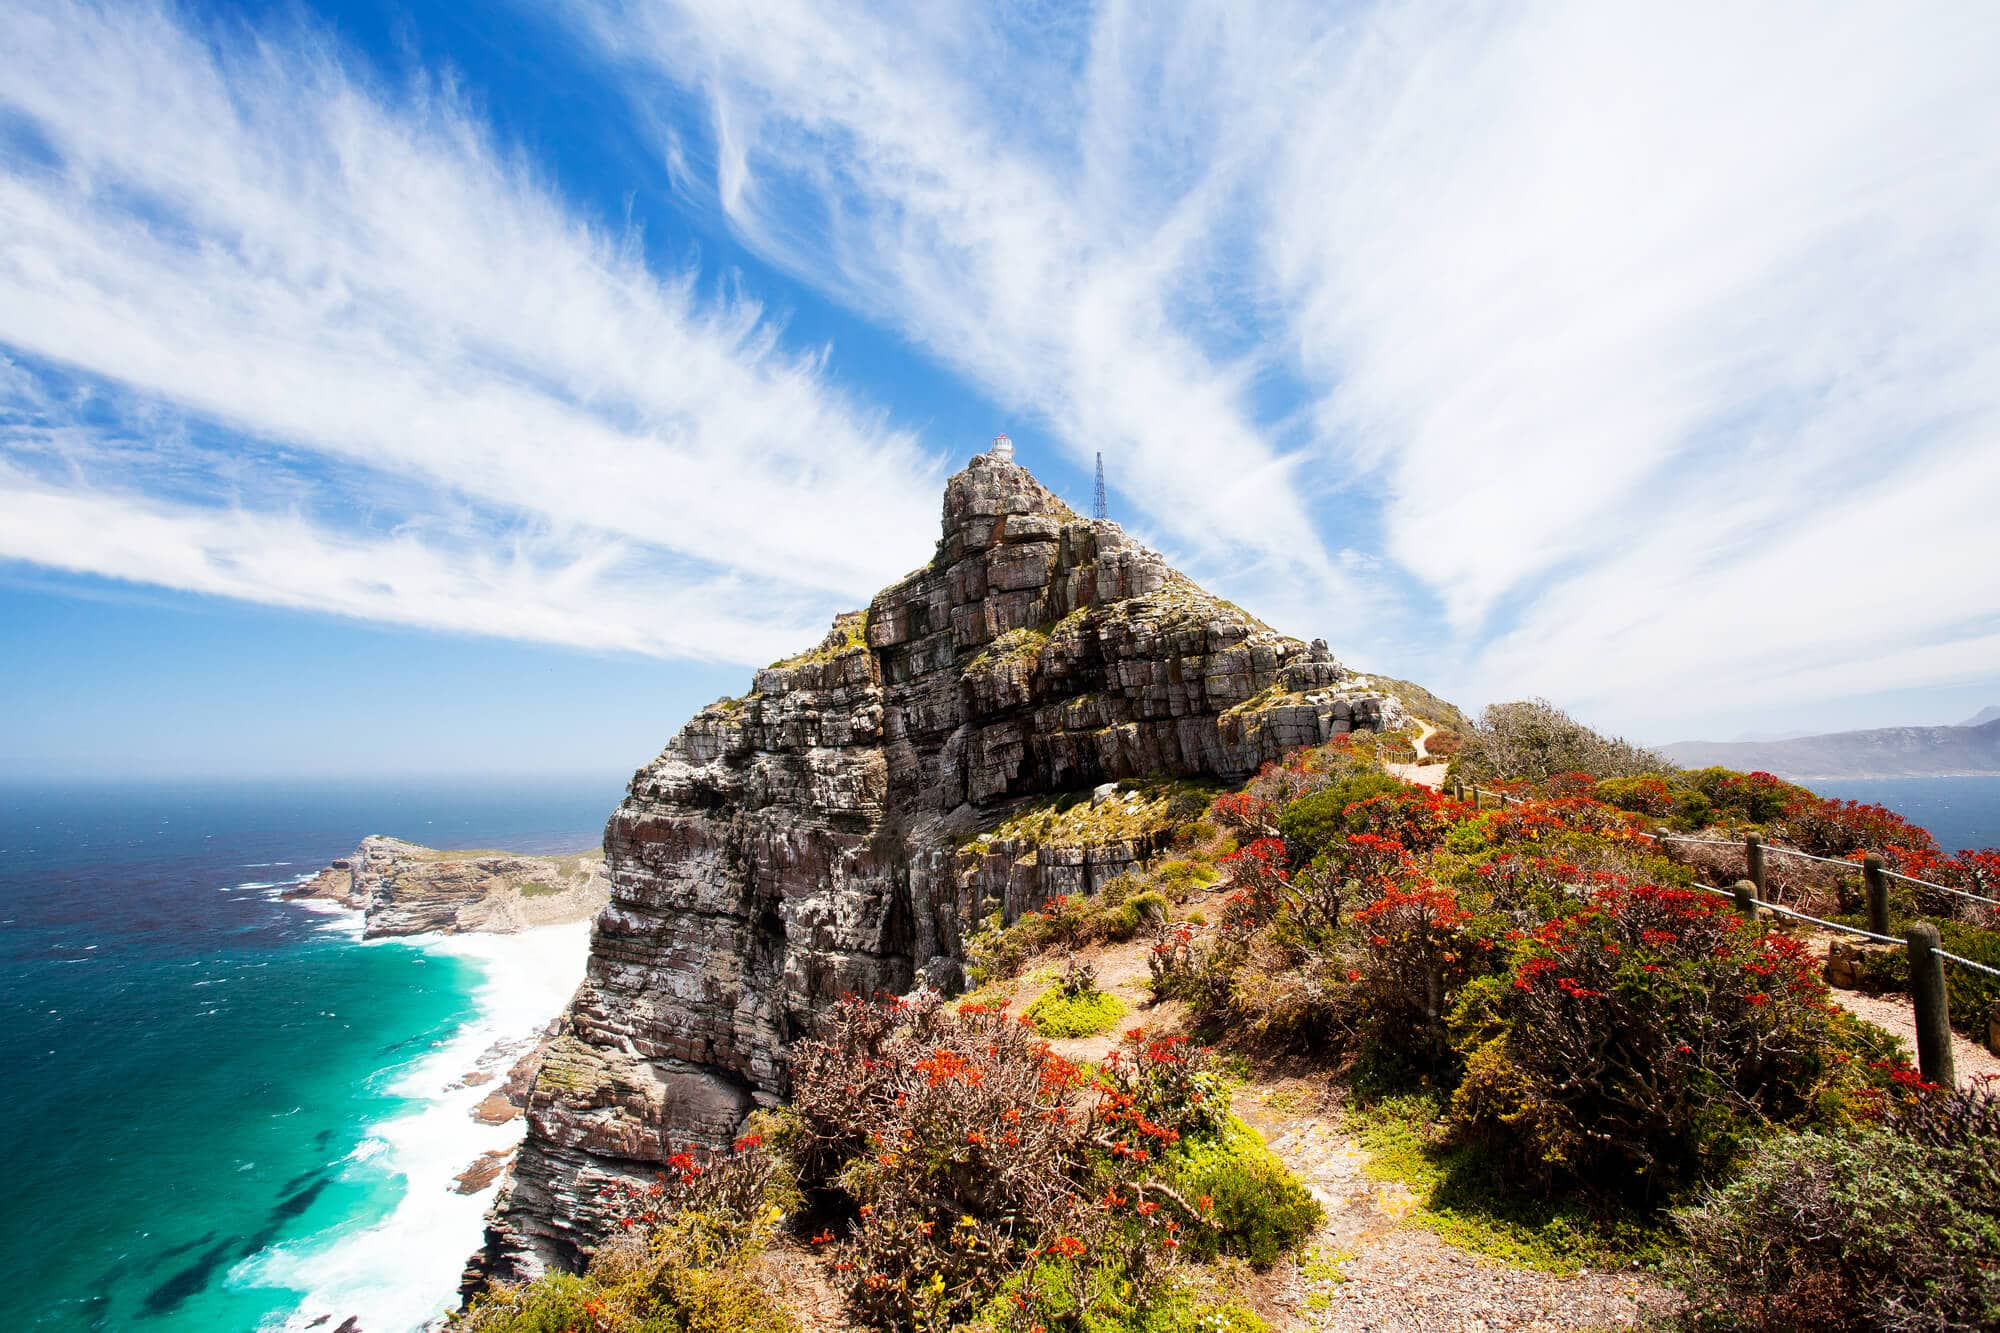 A rocky cliff with red flowers overlooks the ocean below